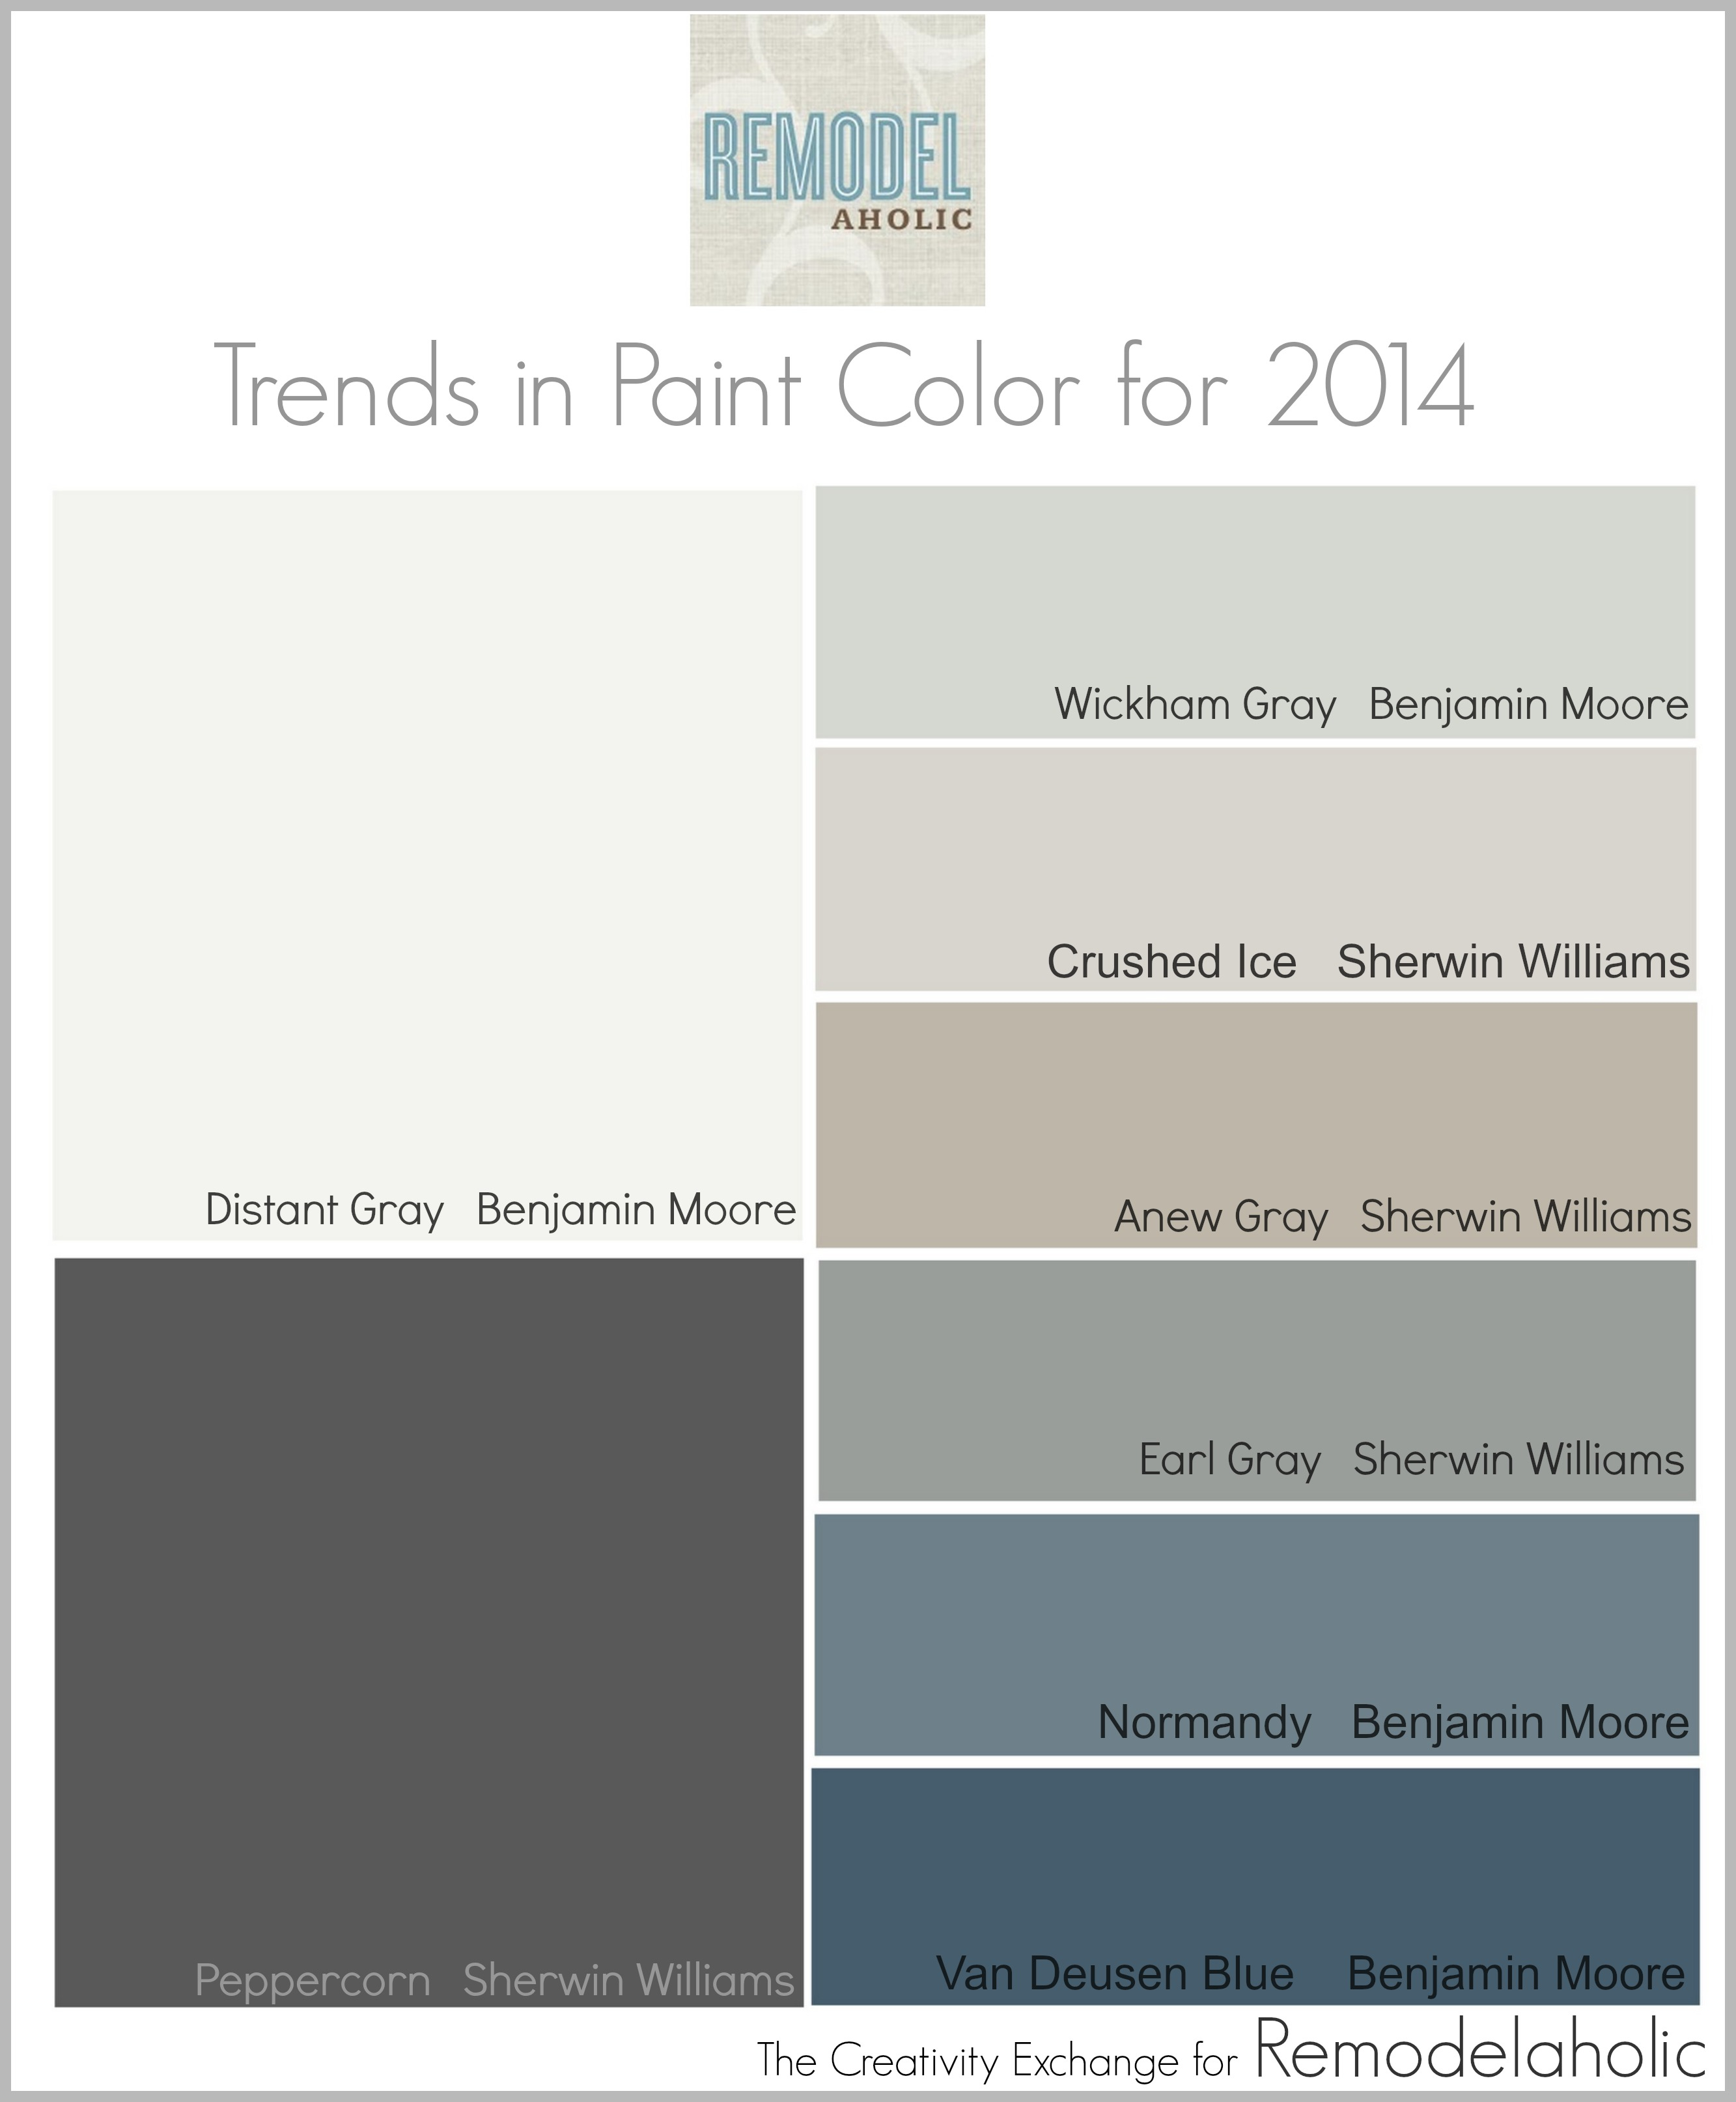 popular colors for bathrooms 2014 remodelaholic trends in paint colors for 2014 24007